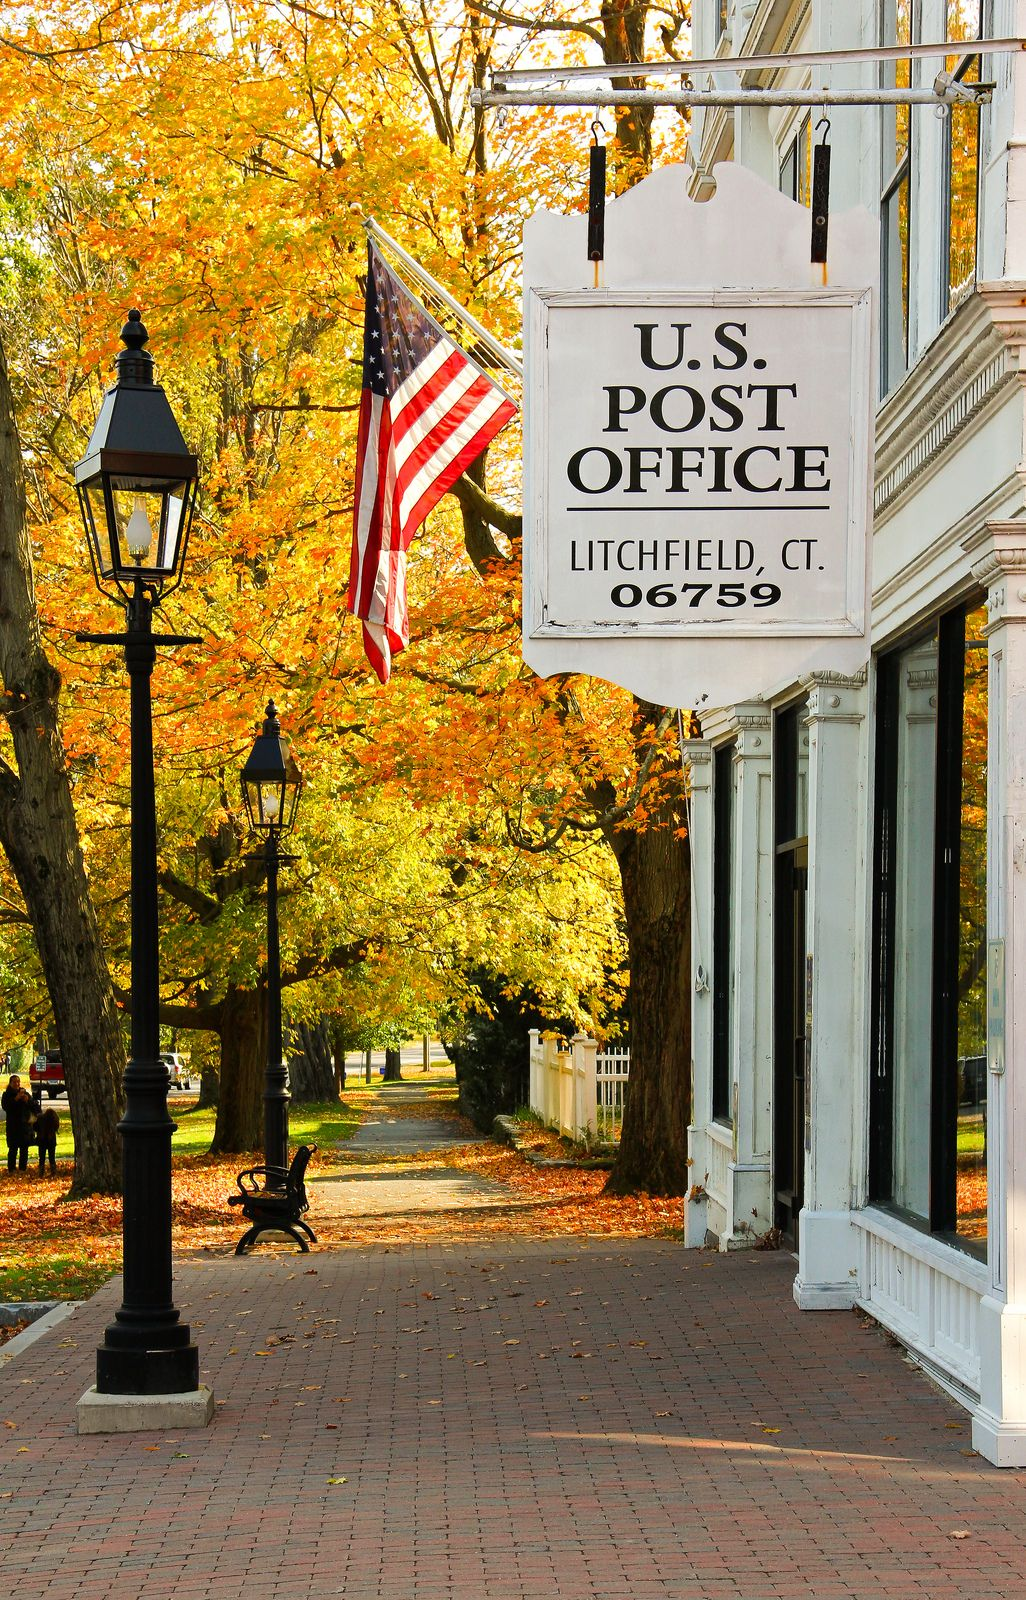 Us Post Office Litchfield Ct In 2020 New England Fall New